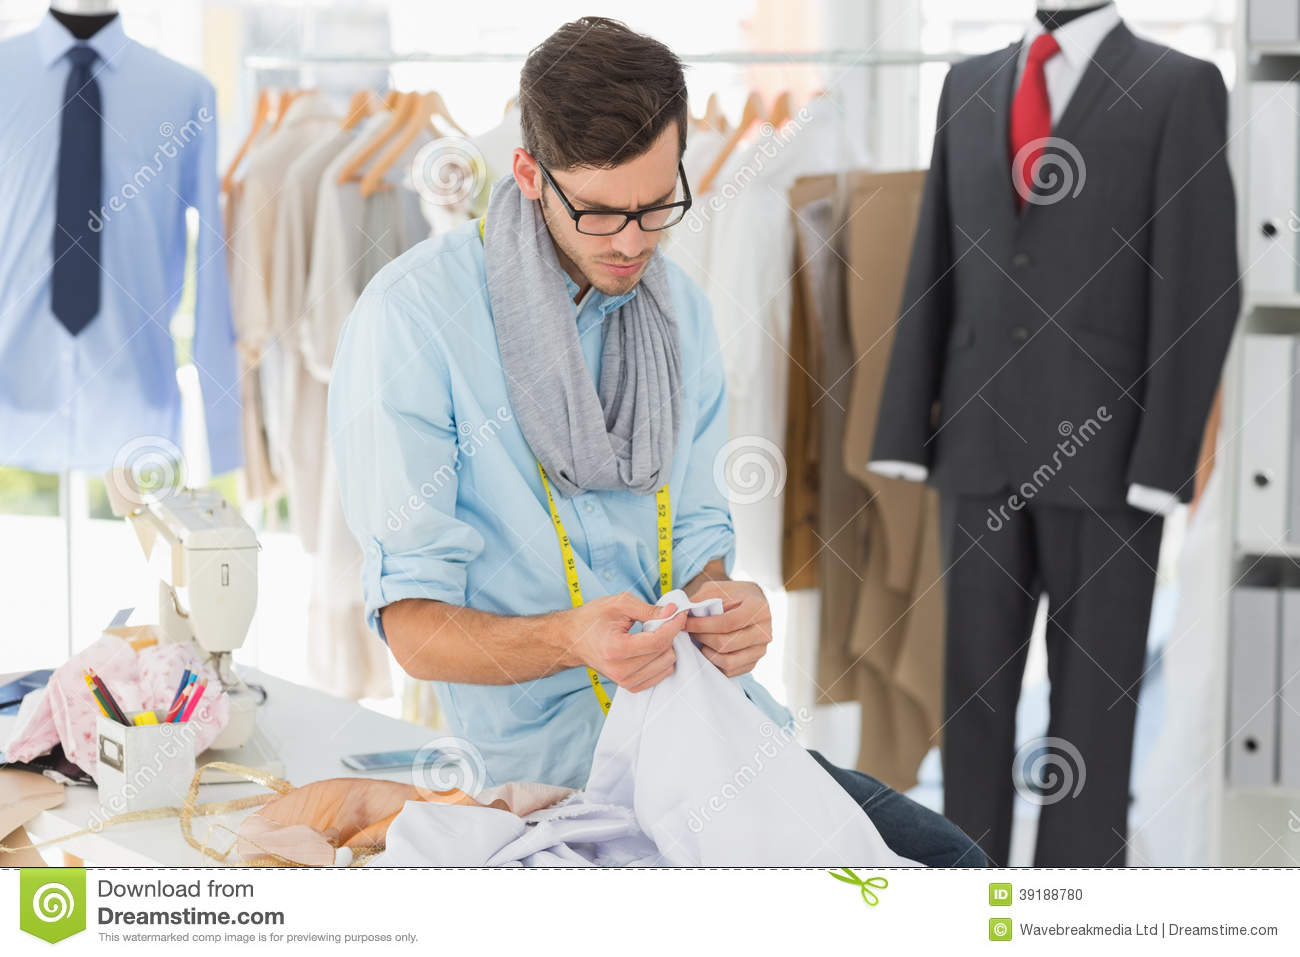 Male Interior Designers At Work image gallery of male fashion designer at work